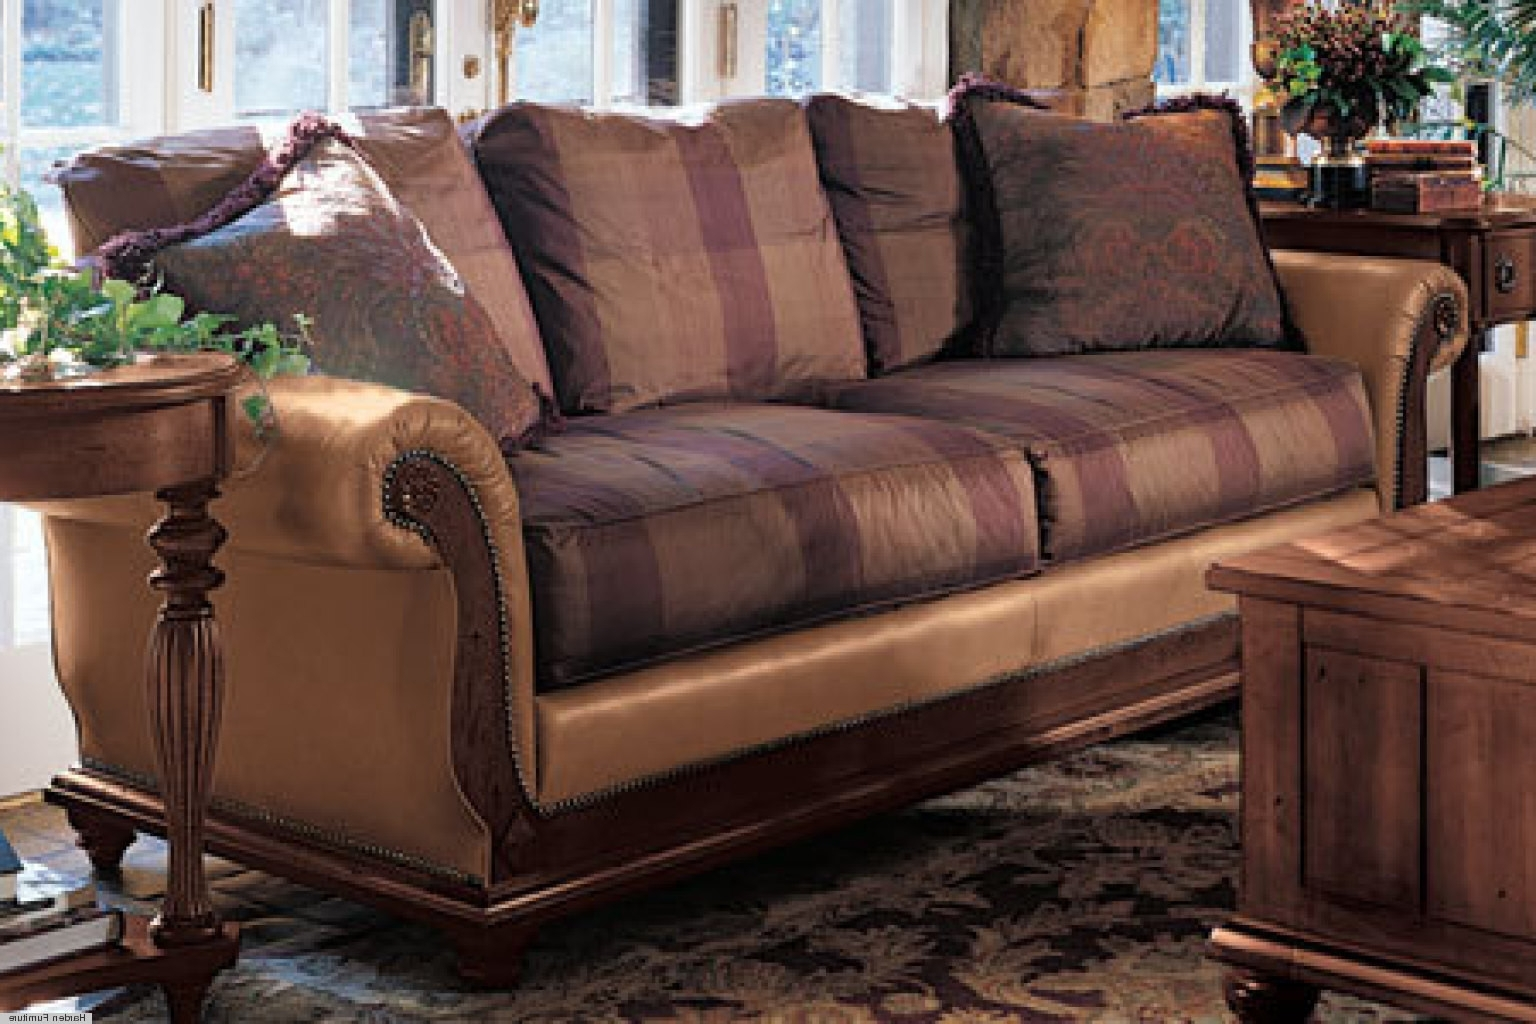 Sectional Sofa Colorado Furniture Row Coupons Sofa Bed Denver Inside Well Liked Furniture Row Sectional Sofas (View 7 of 15)